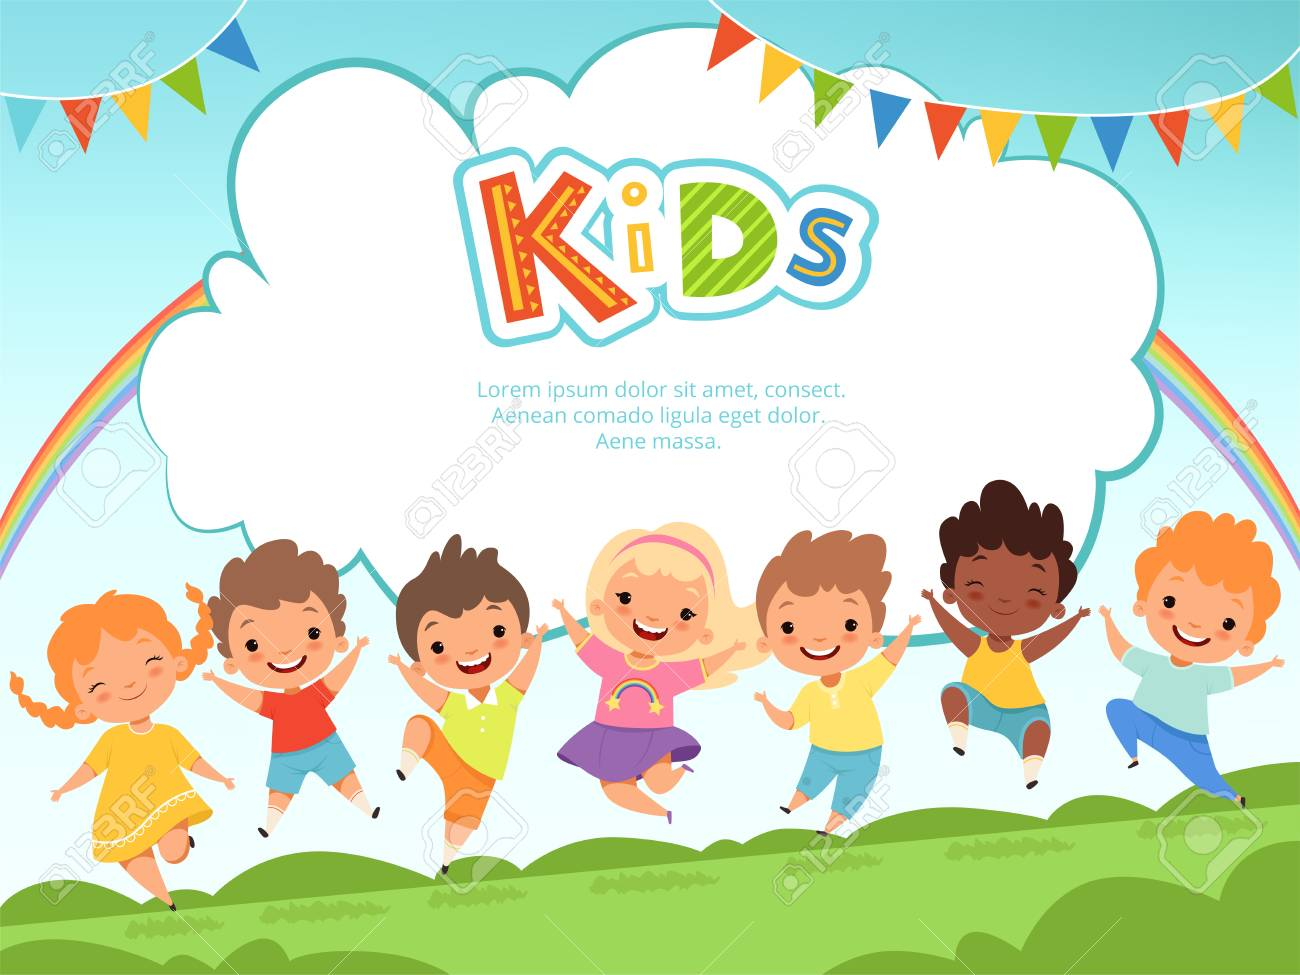 Children jumping background. Happy kids playing male and female on playground vector template with place for your text. Happy girl and boy, play fun jumping, friendship and childhood illustration - 108984594